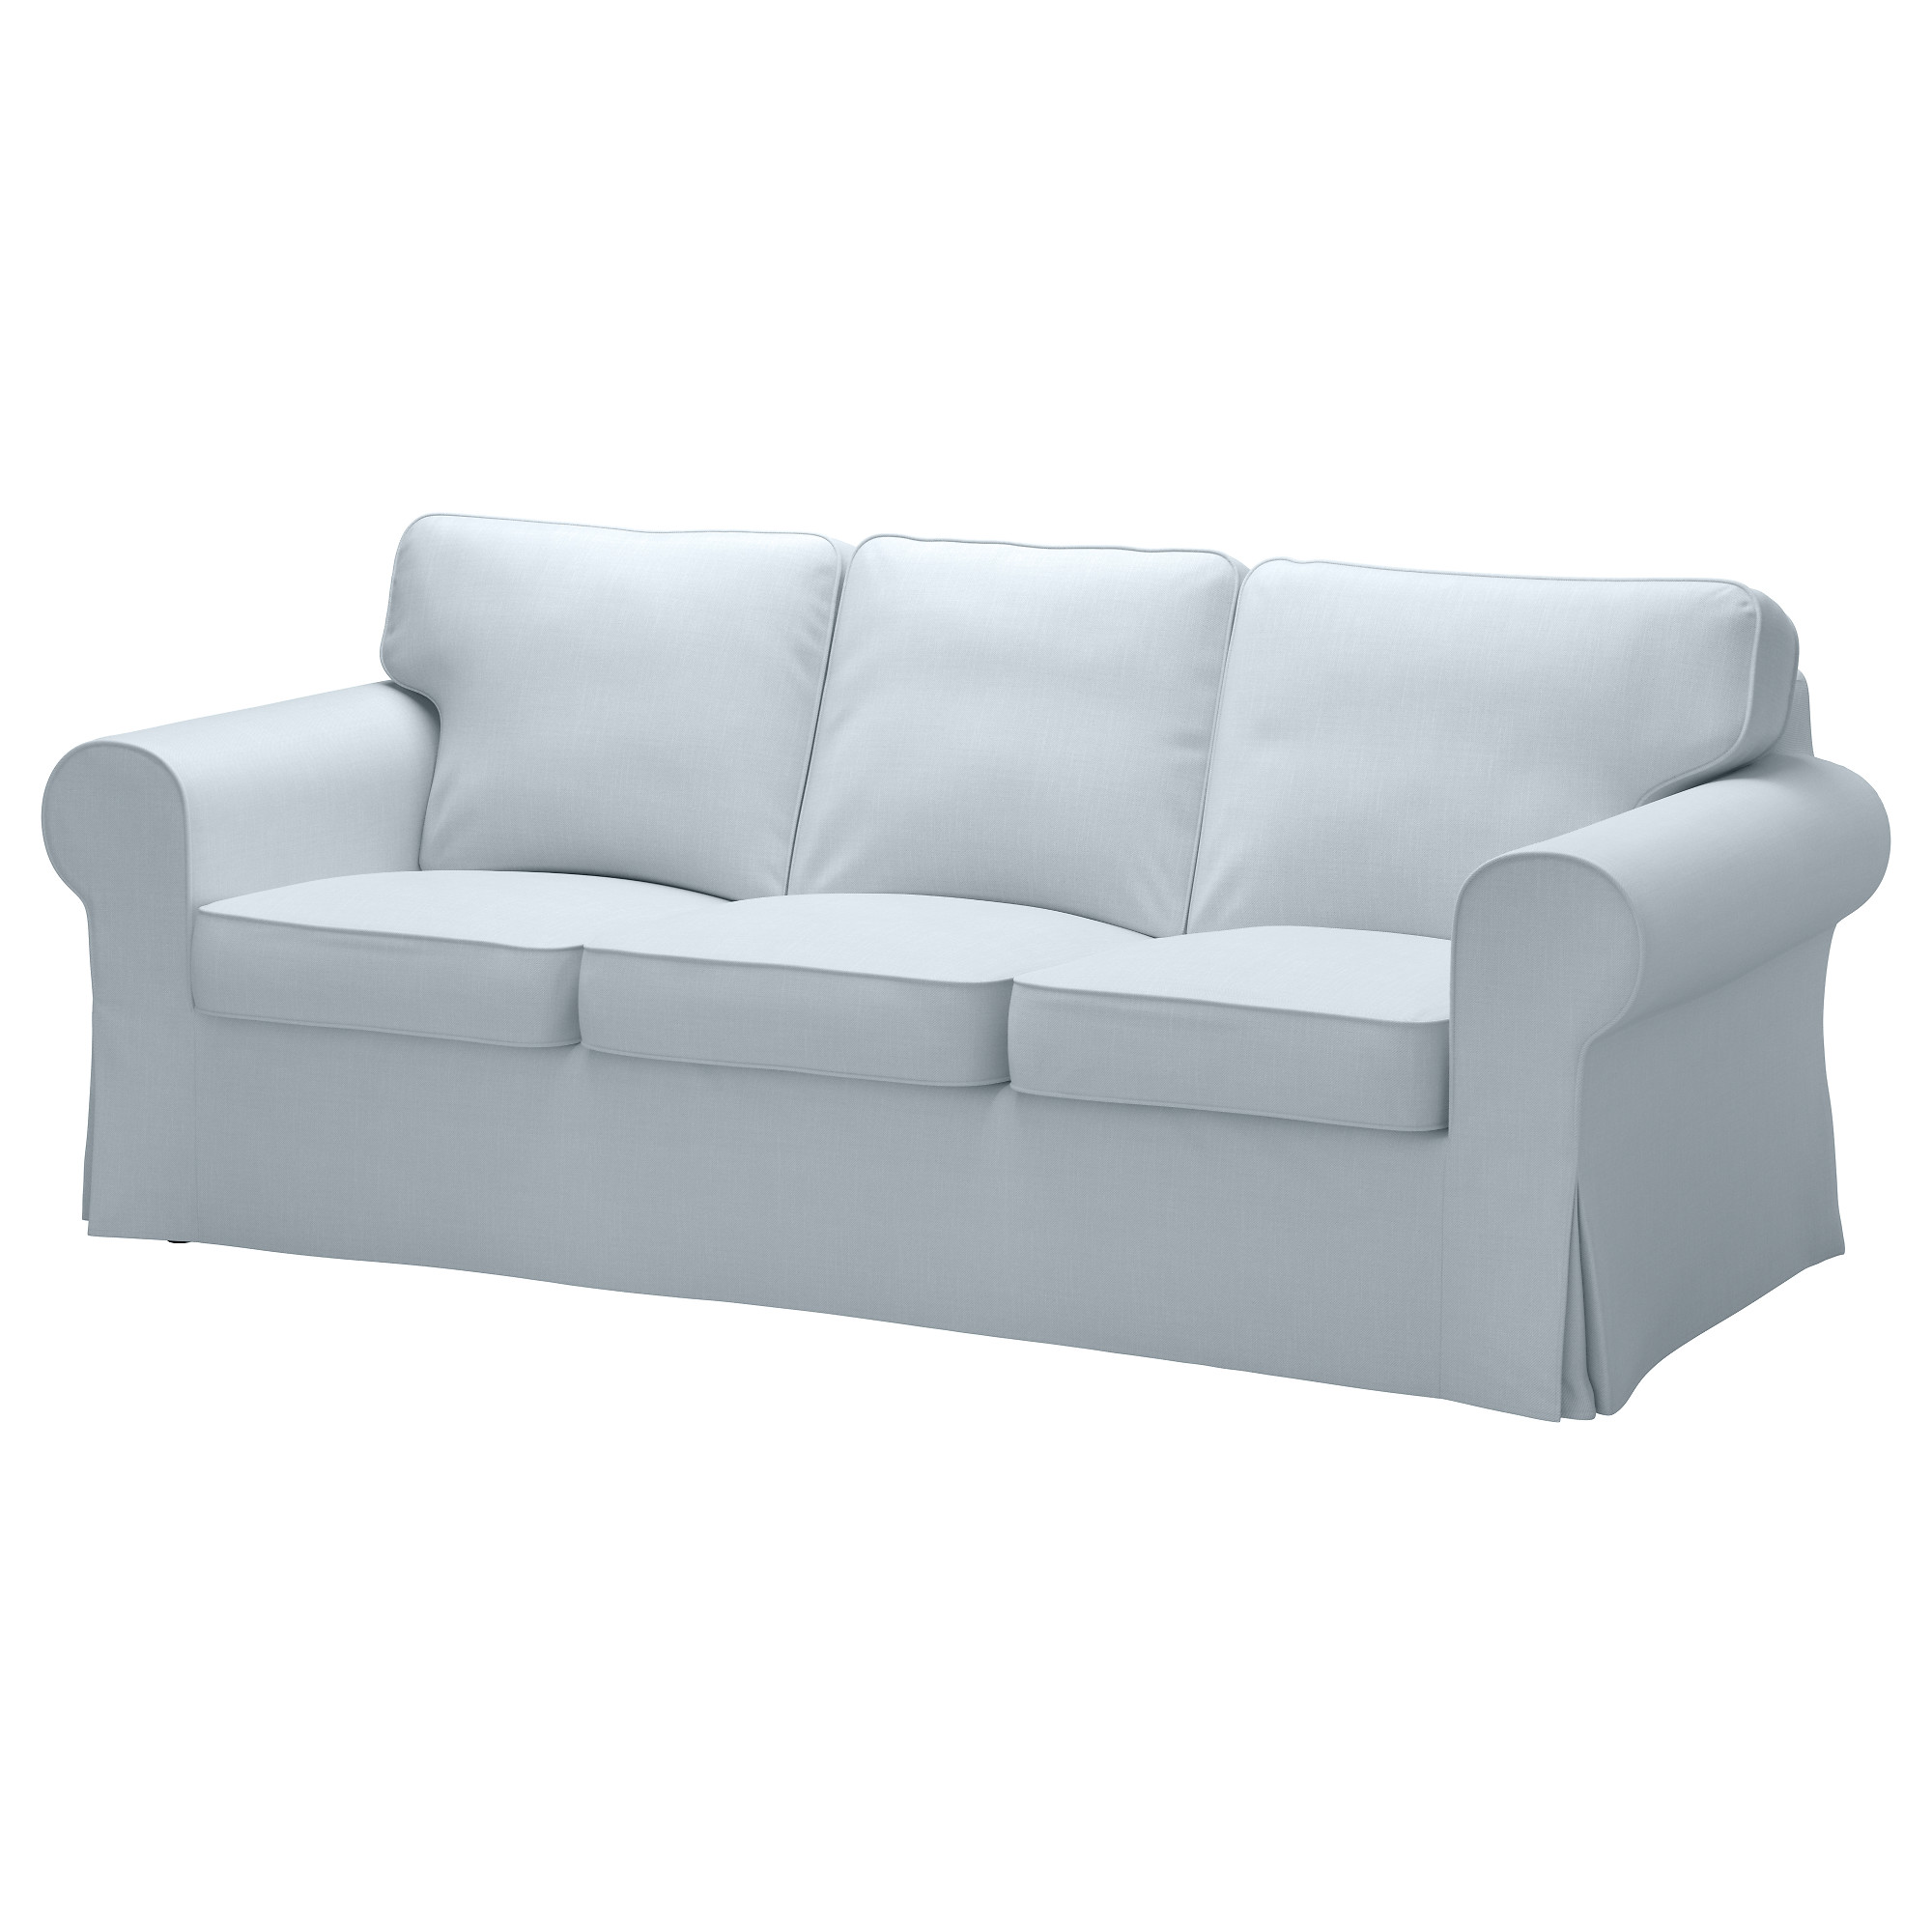 ideas fabric sofa cushion sofas sale photo box elegant full ikea shocking living slipcover slipcoverwhite and size contemporary slipcovers sets white cover alan modern loveseat room ektorp throw amazon of table couches